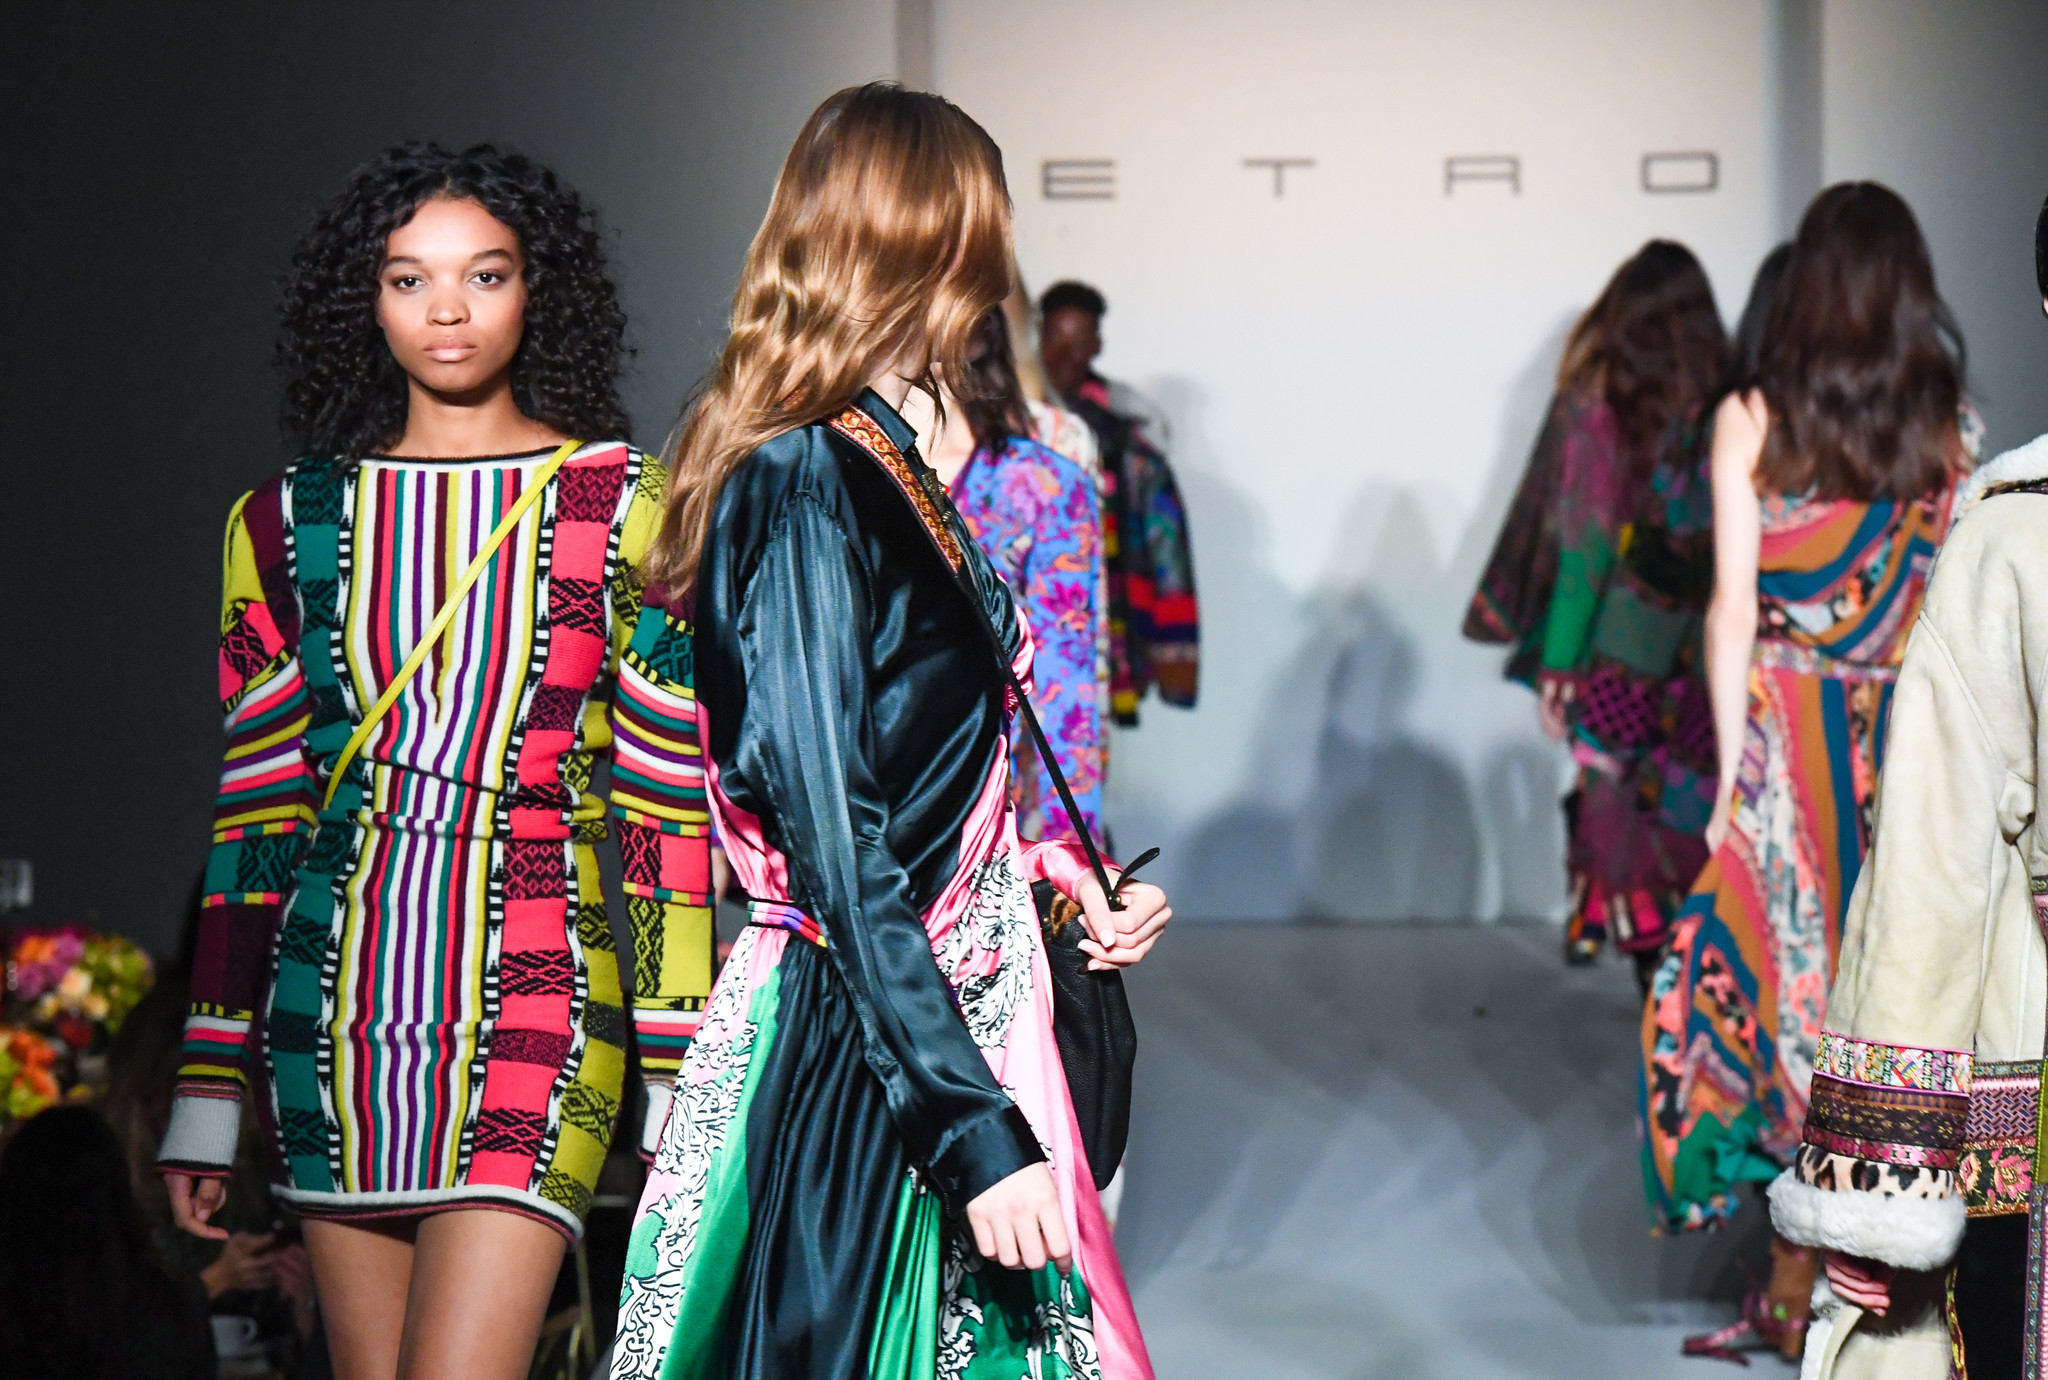 The MOCA luncheon, which was presented by the MOCA Projects Council, featured a runway show of Etro's fall/winter 2017 collection.